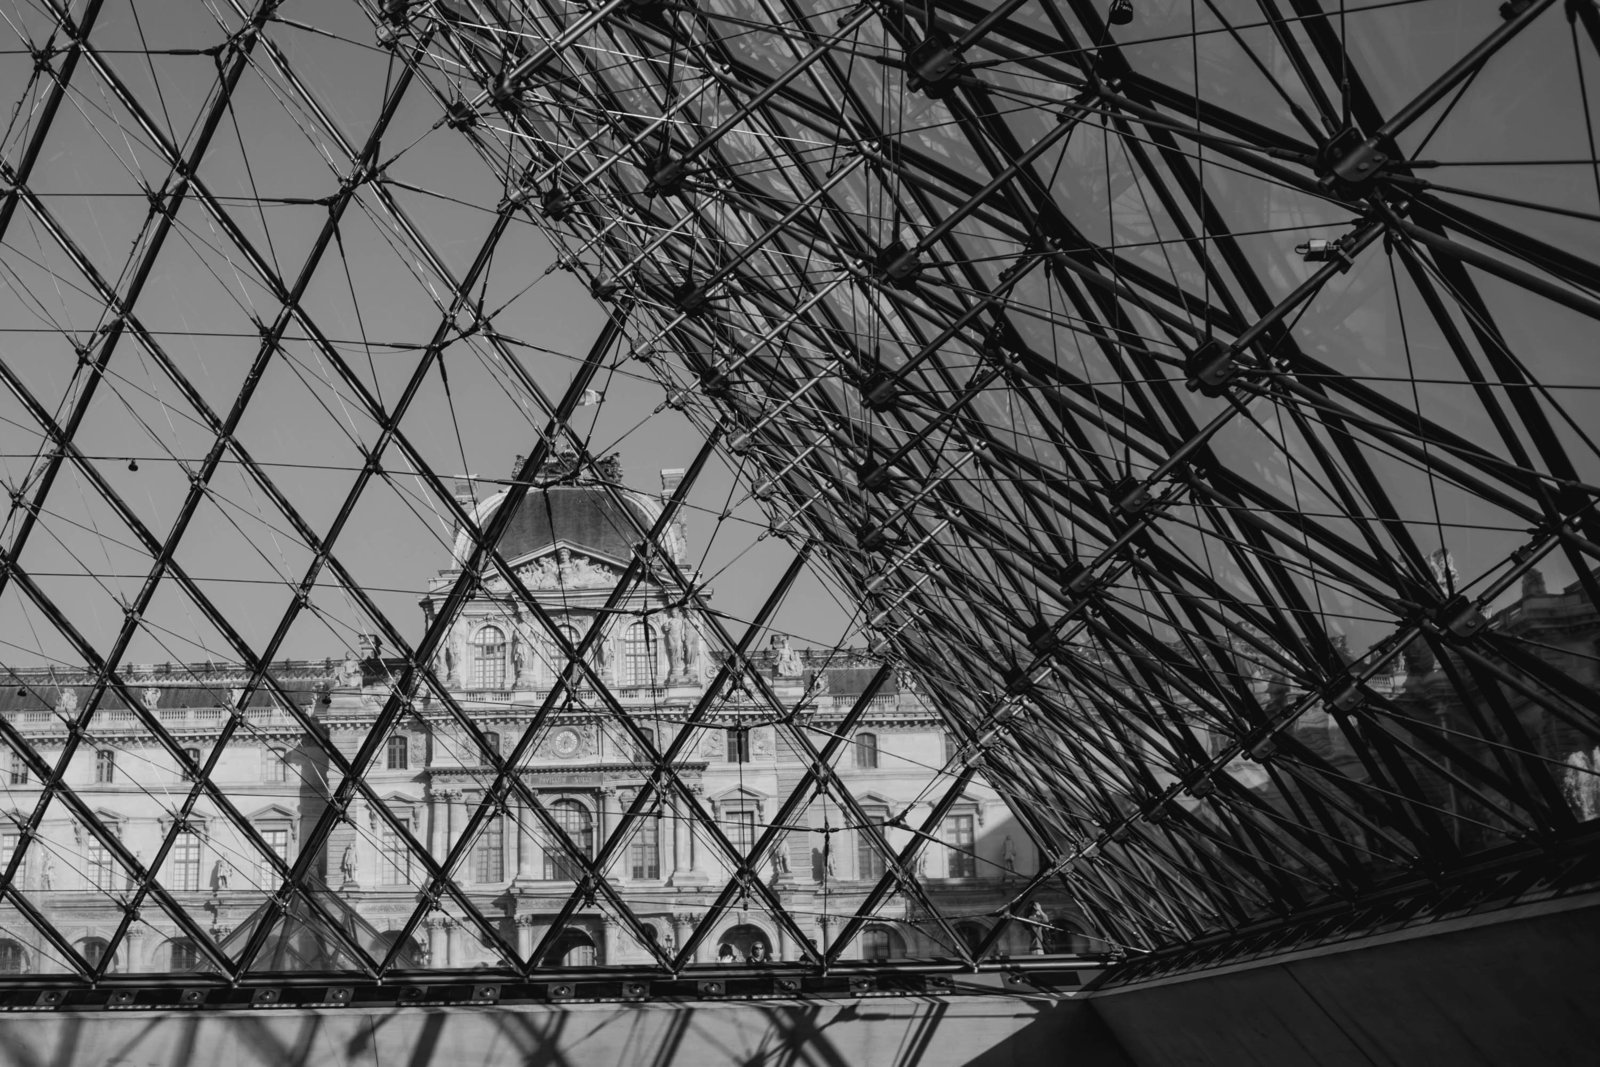 louvre-pyramid-paris-france-travel-destination-wedding-kate-timbers-photography-1866